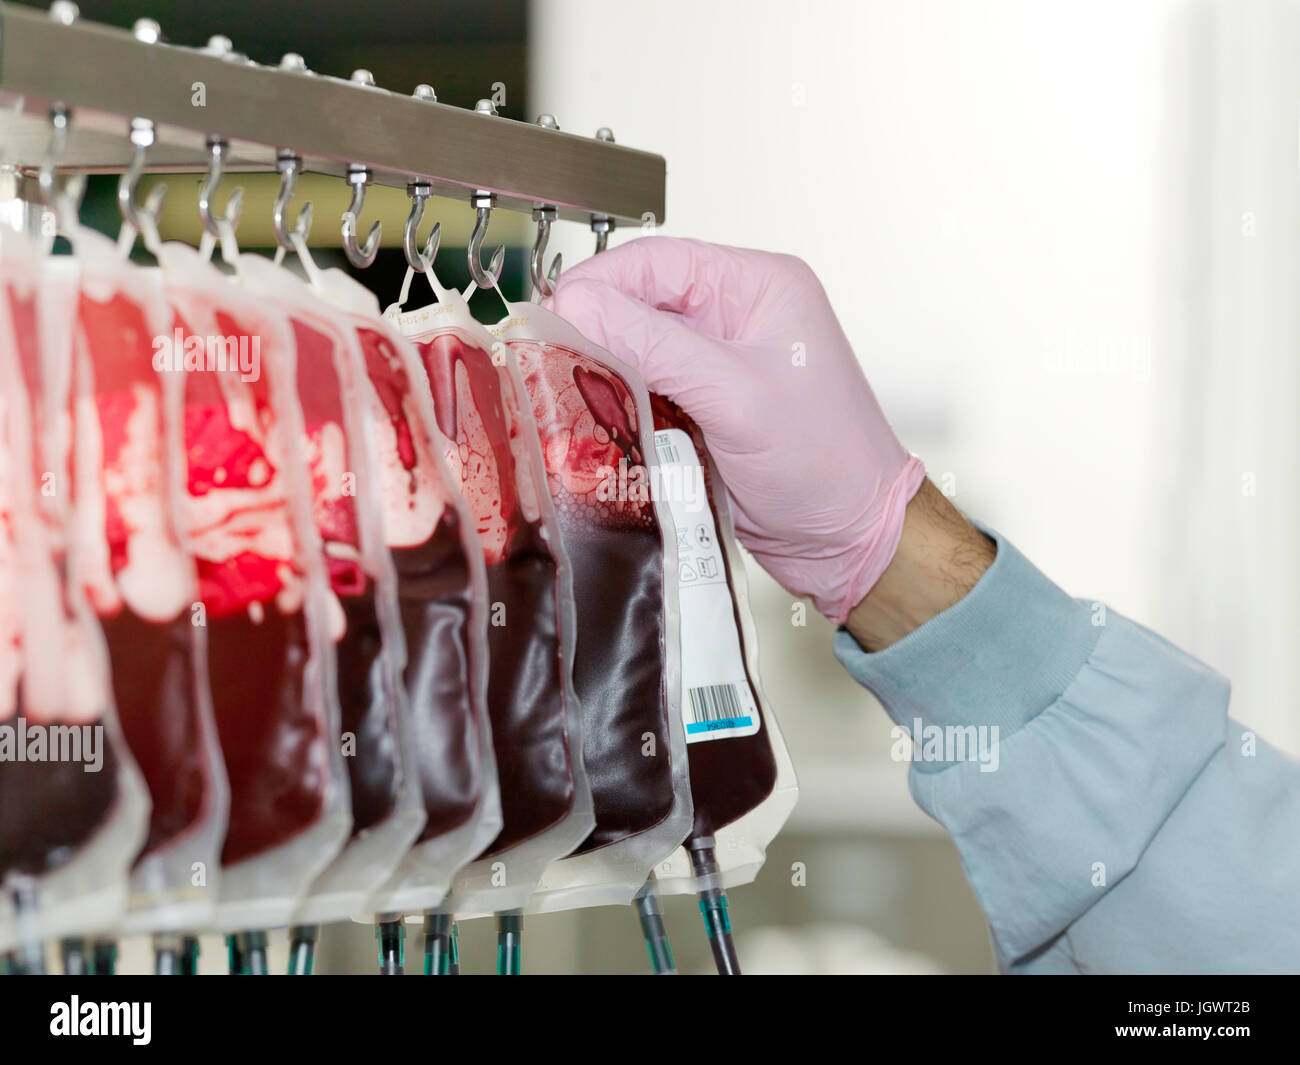 Bags of donated blood hanging in processing facility of blood bank - Stock Image